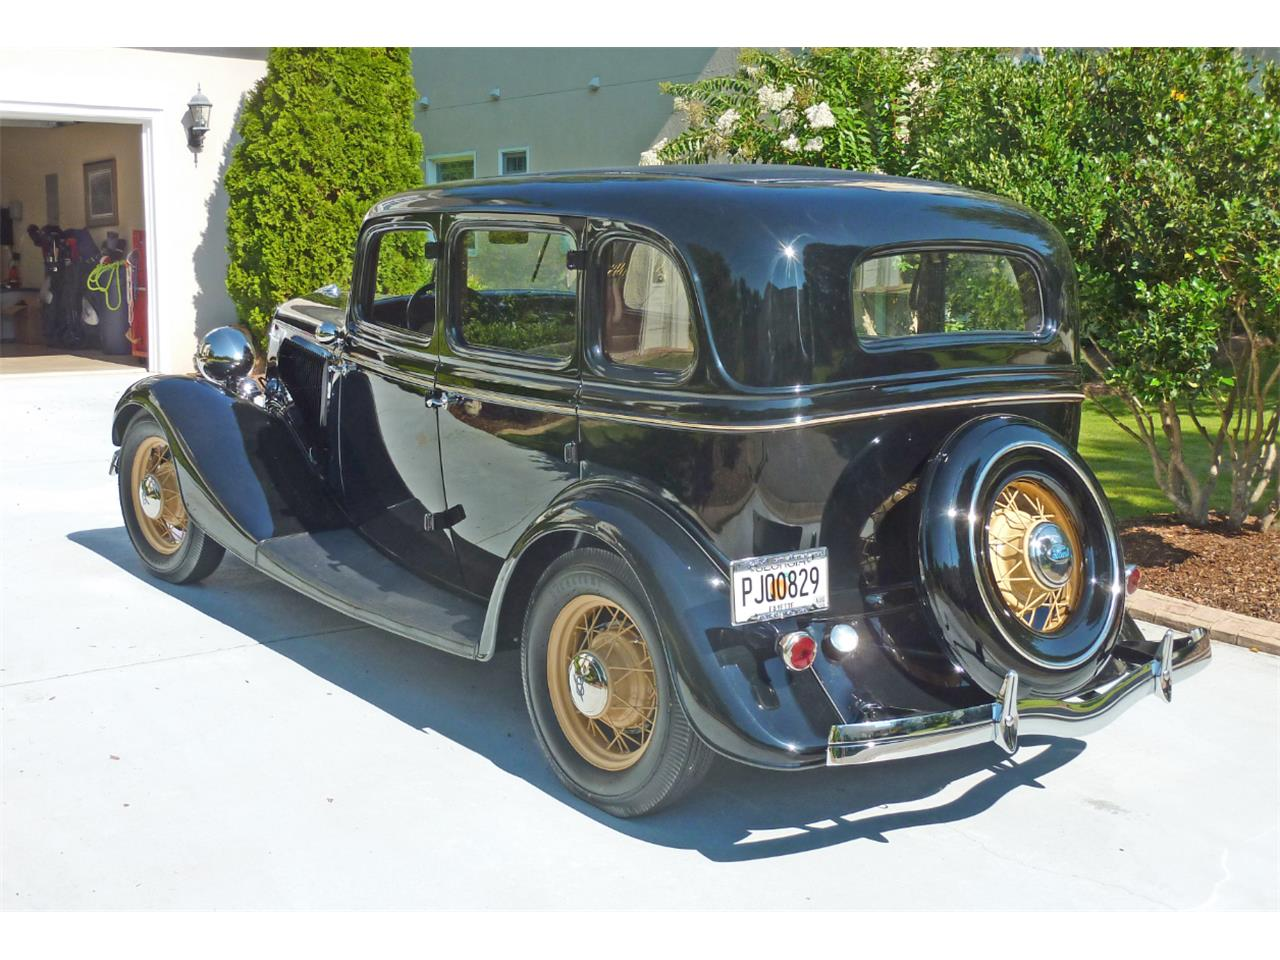 Large Picture of Classic '34 Ford Sedan - $46,000.00 Offered by a Private Seller - ISZK